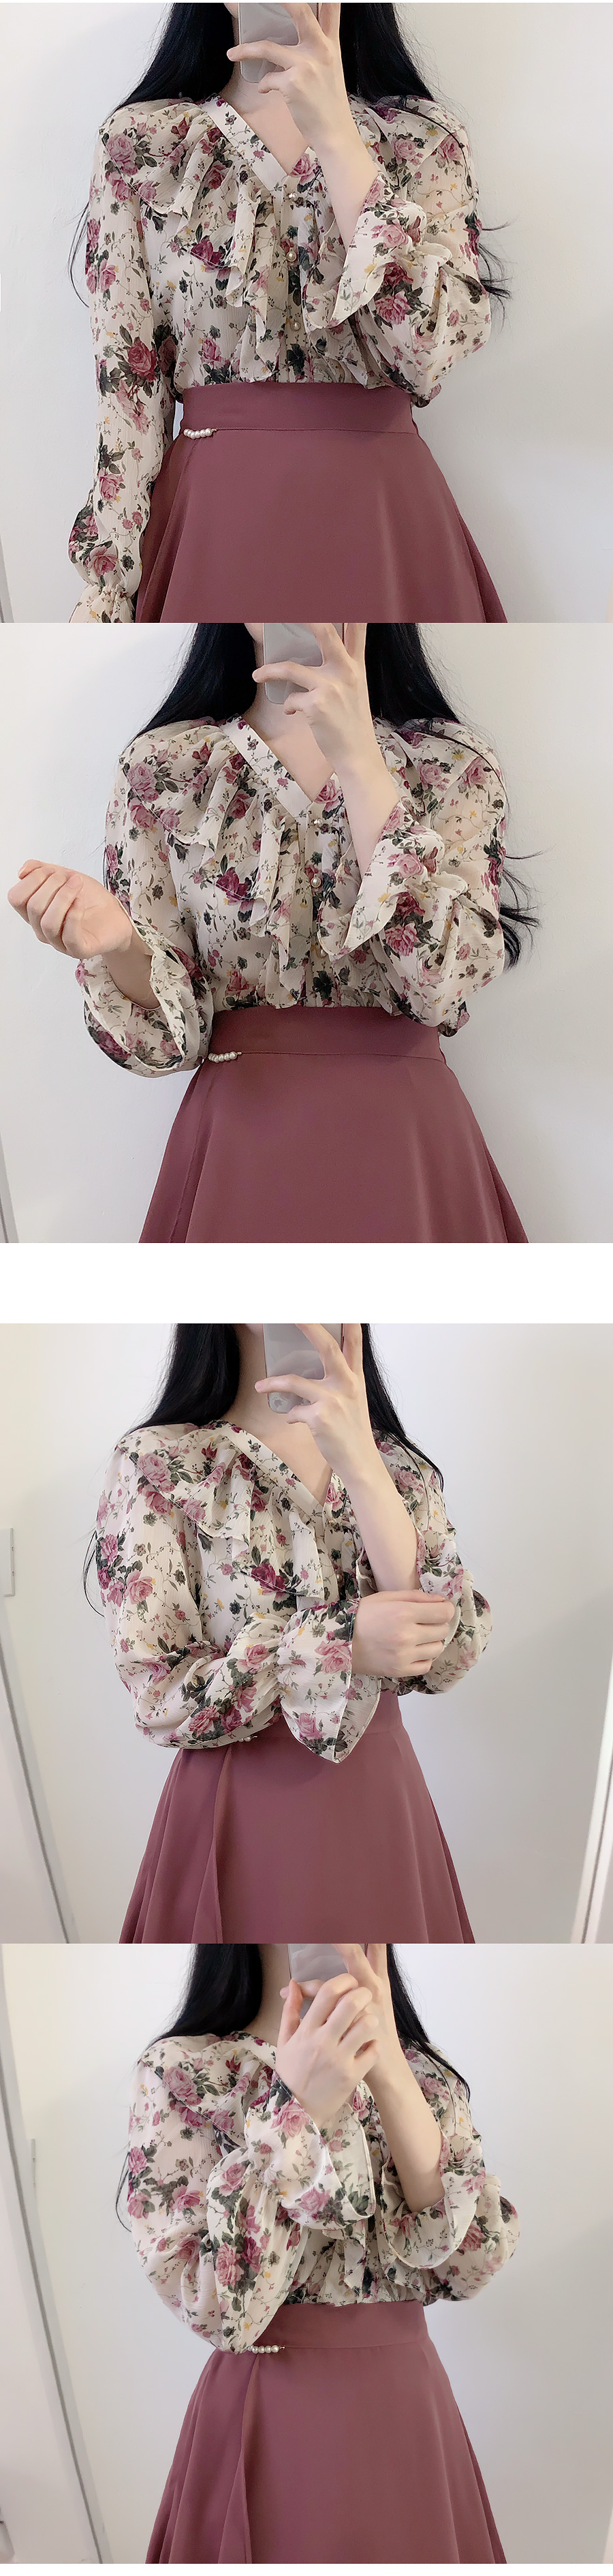 Rosette Shirring Flower Blouse